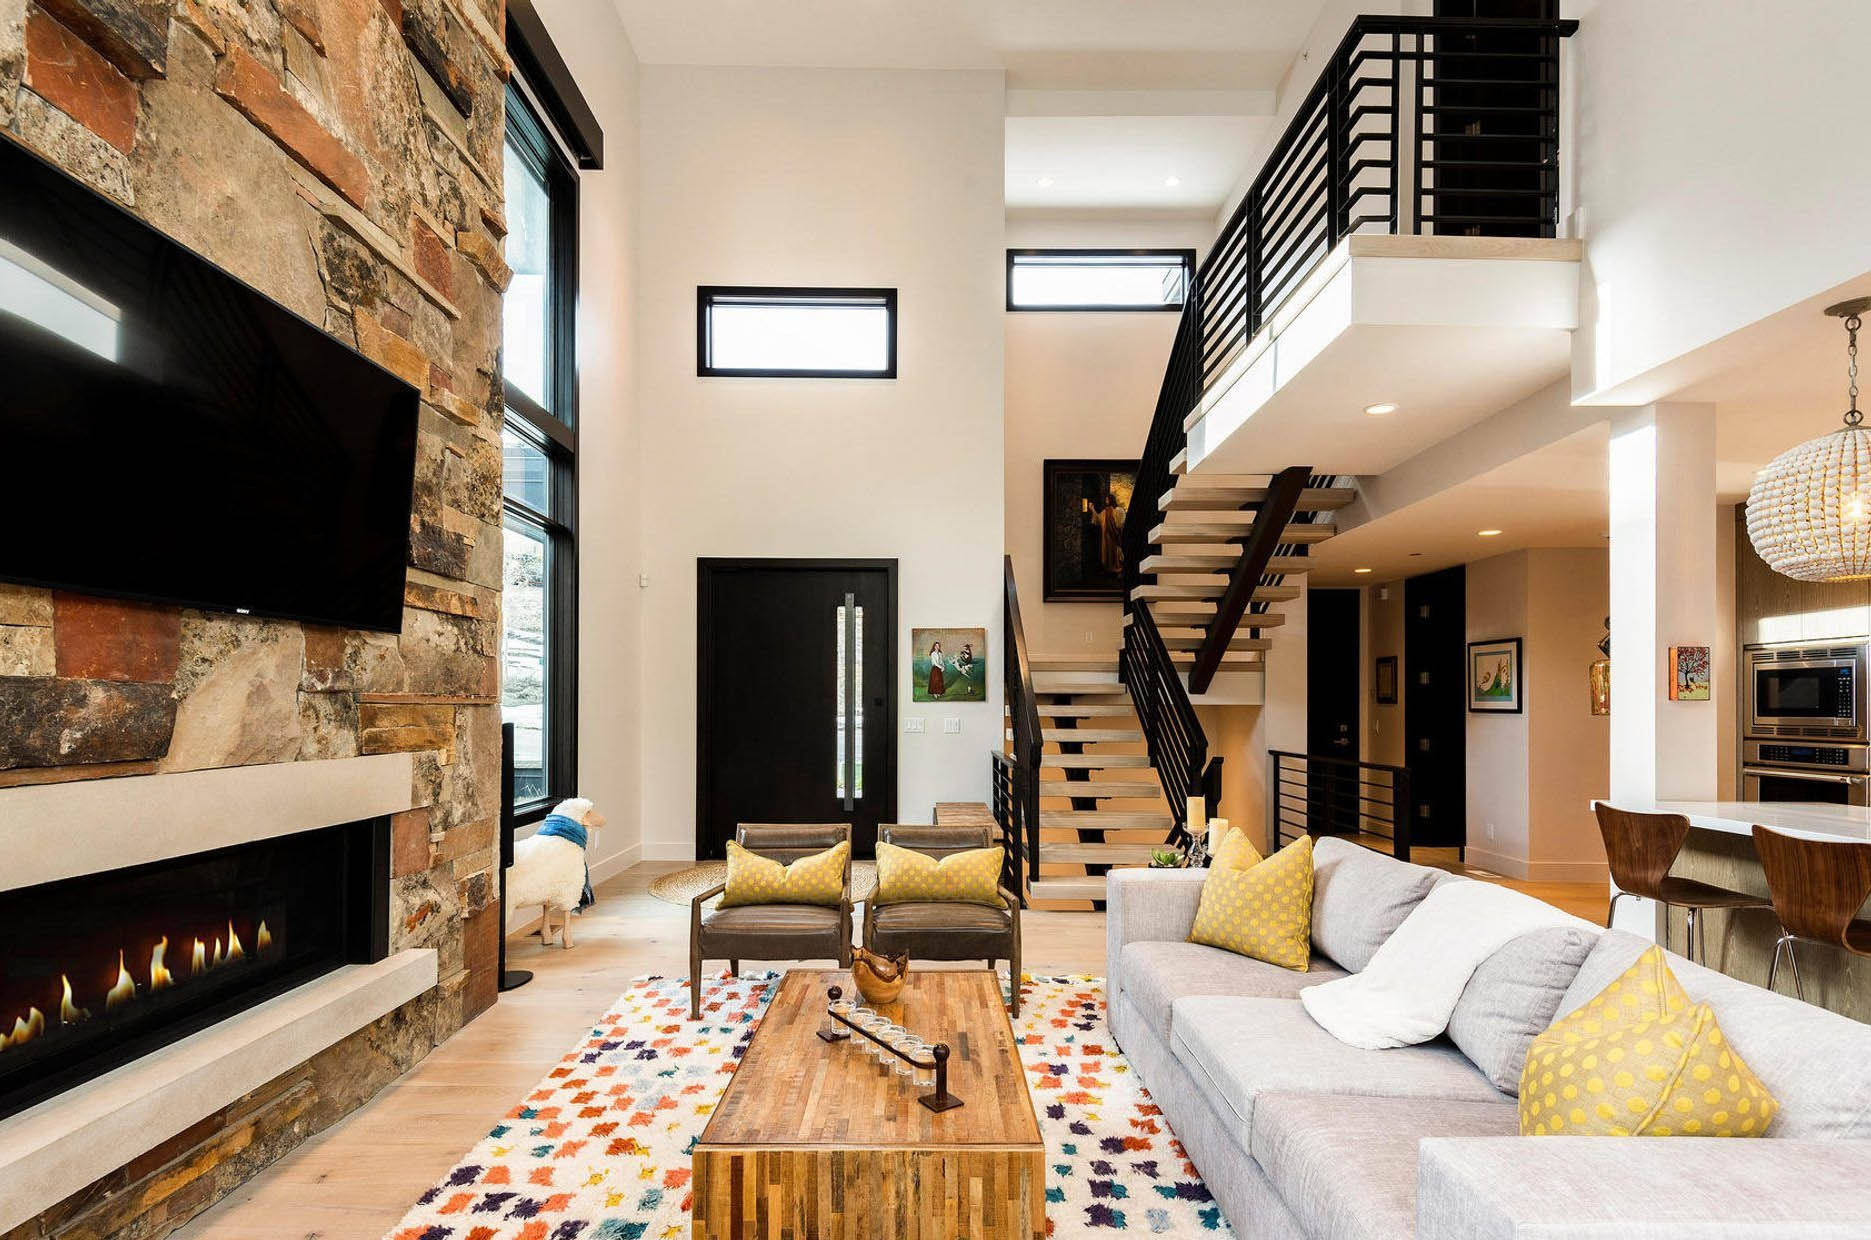 Modern Staircase Design Contemporary Stair Design Ideas | Home Interior Stairs Design | Wall | L Shaped | Elegant | American | Creative